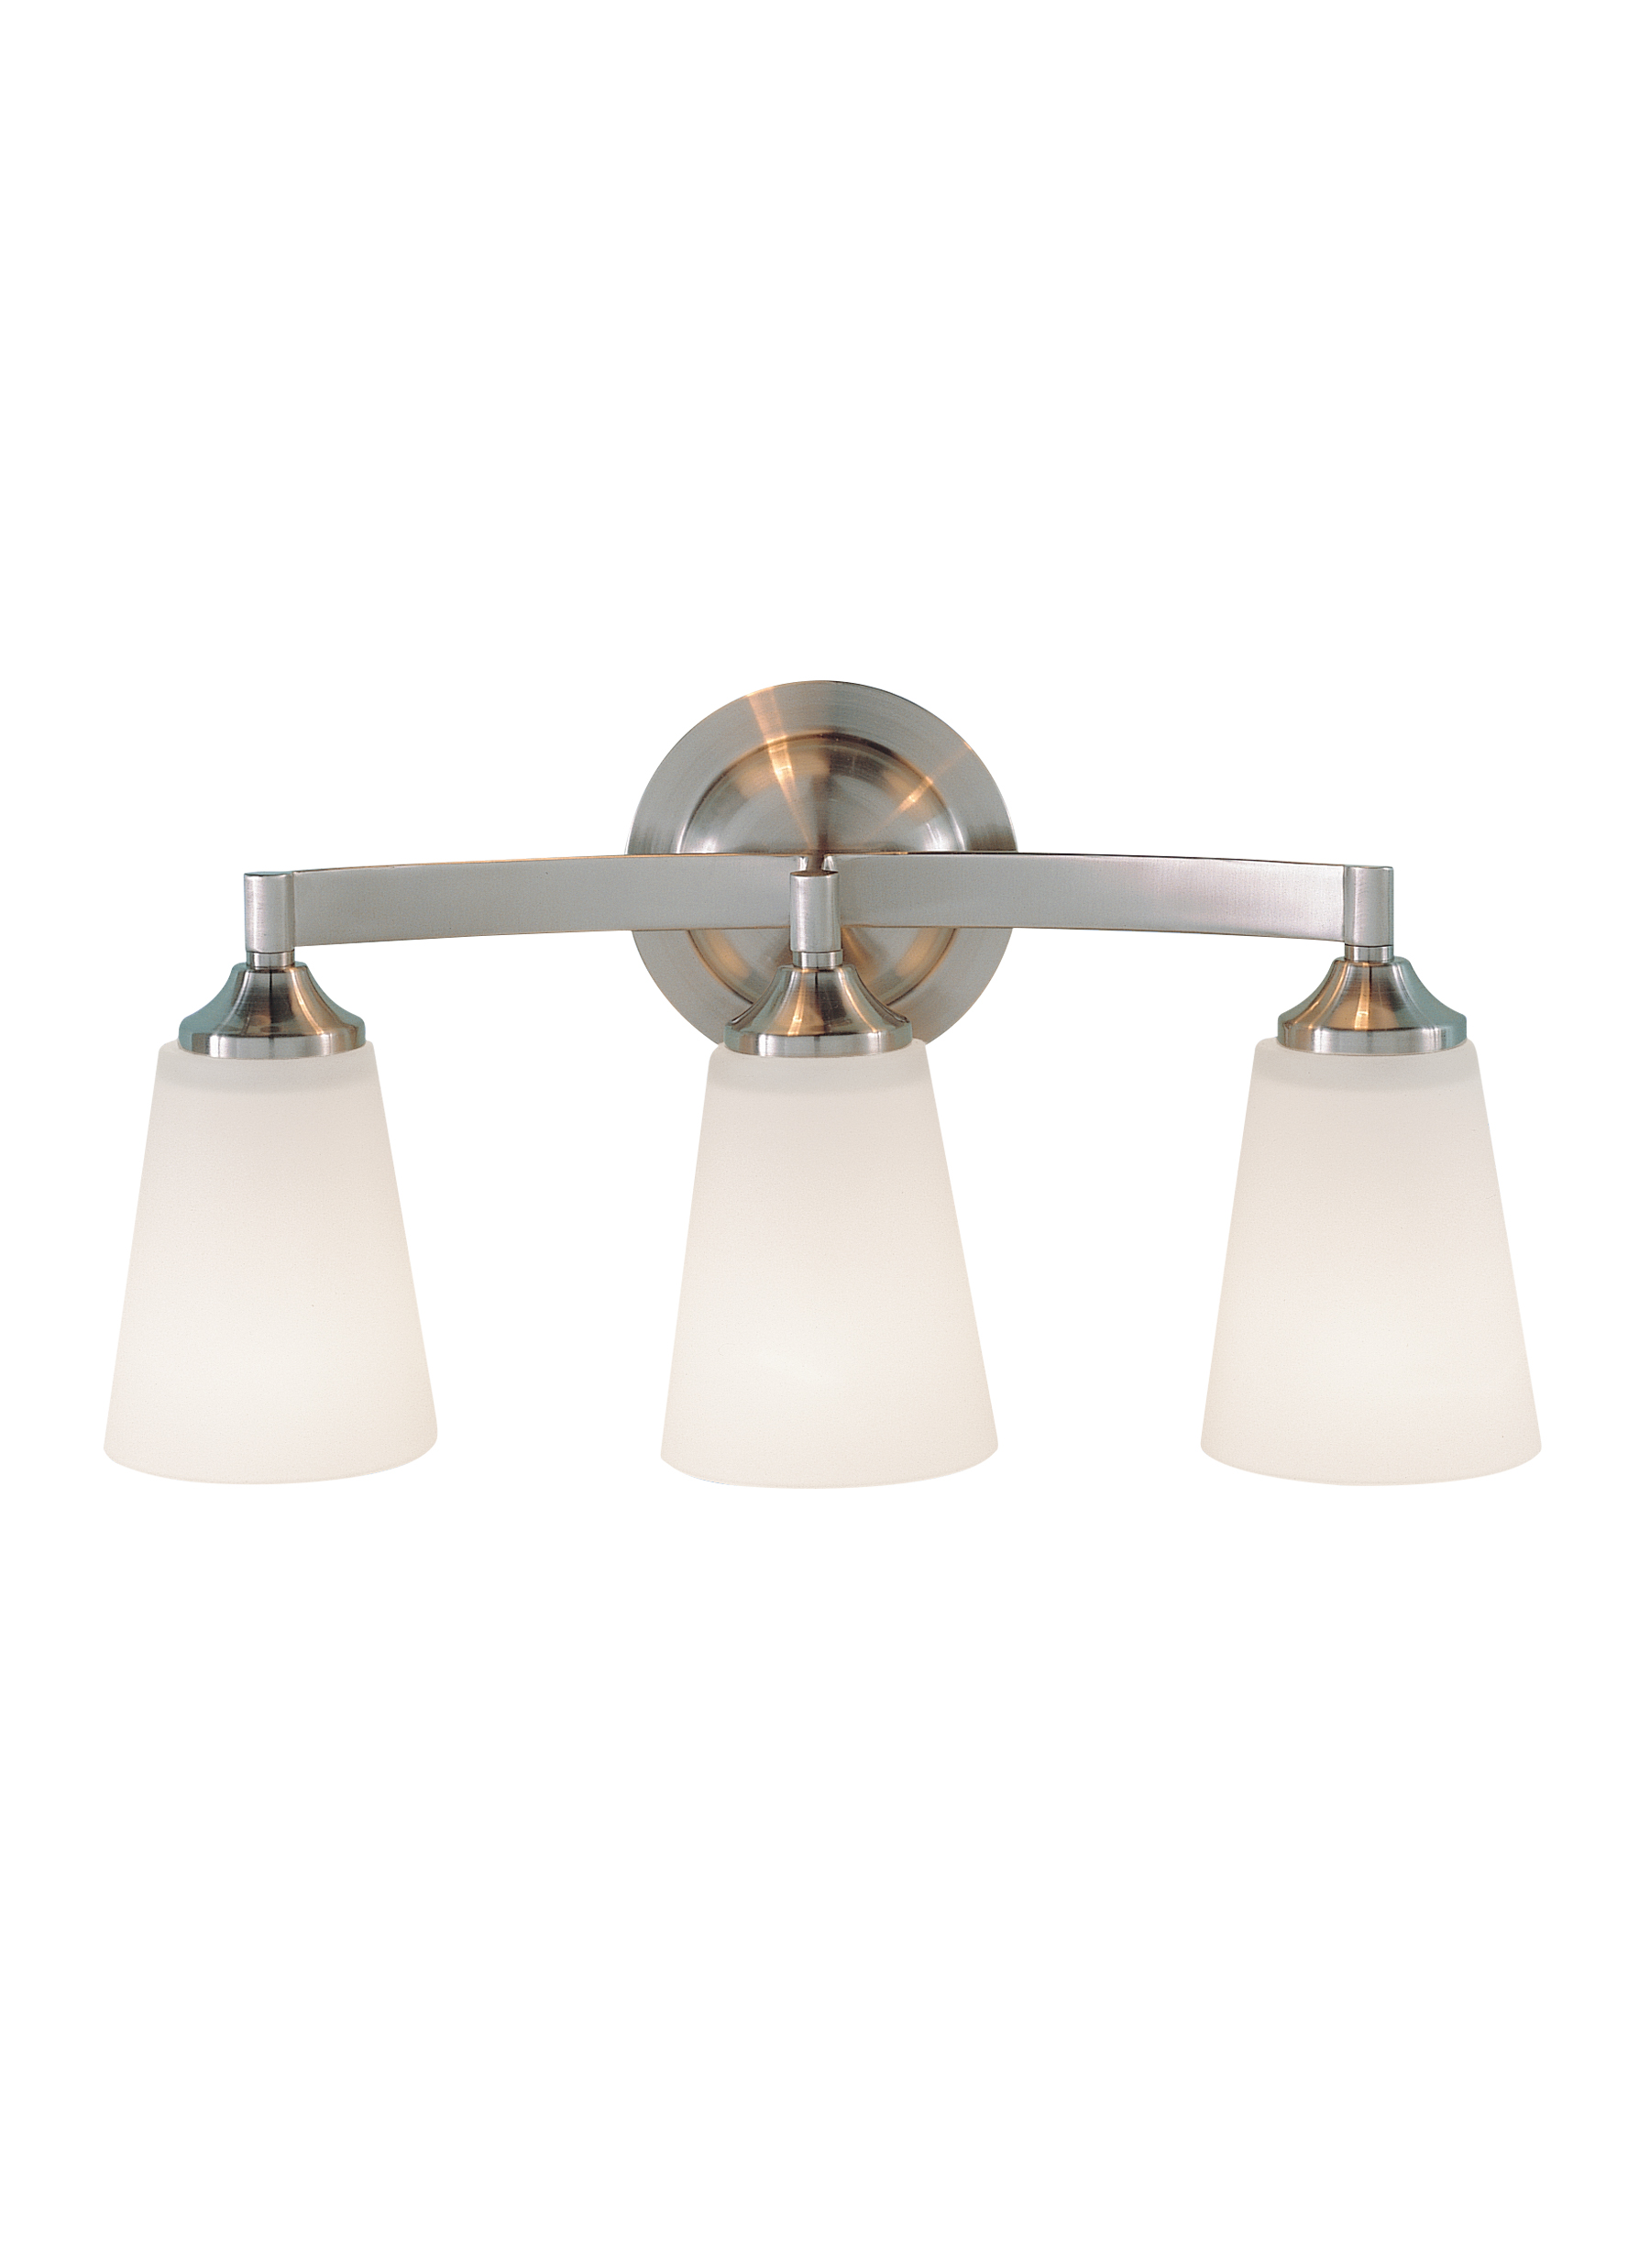 VS9403-BS,3 - Light Vanity Fixture,Brushed Steel